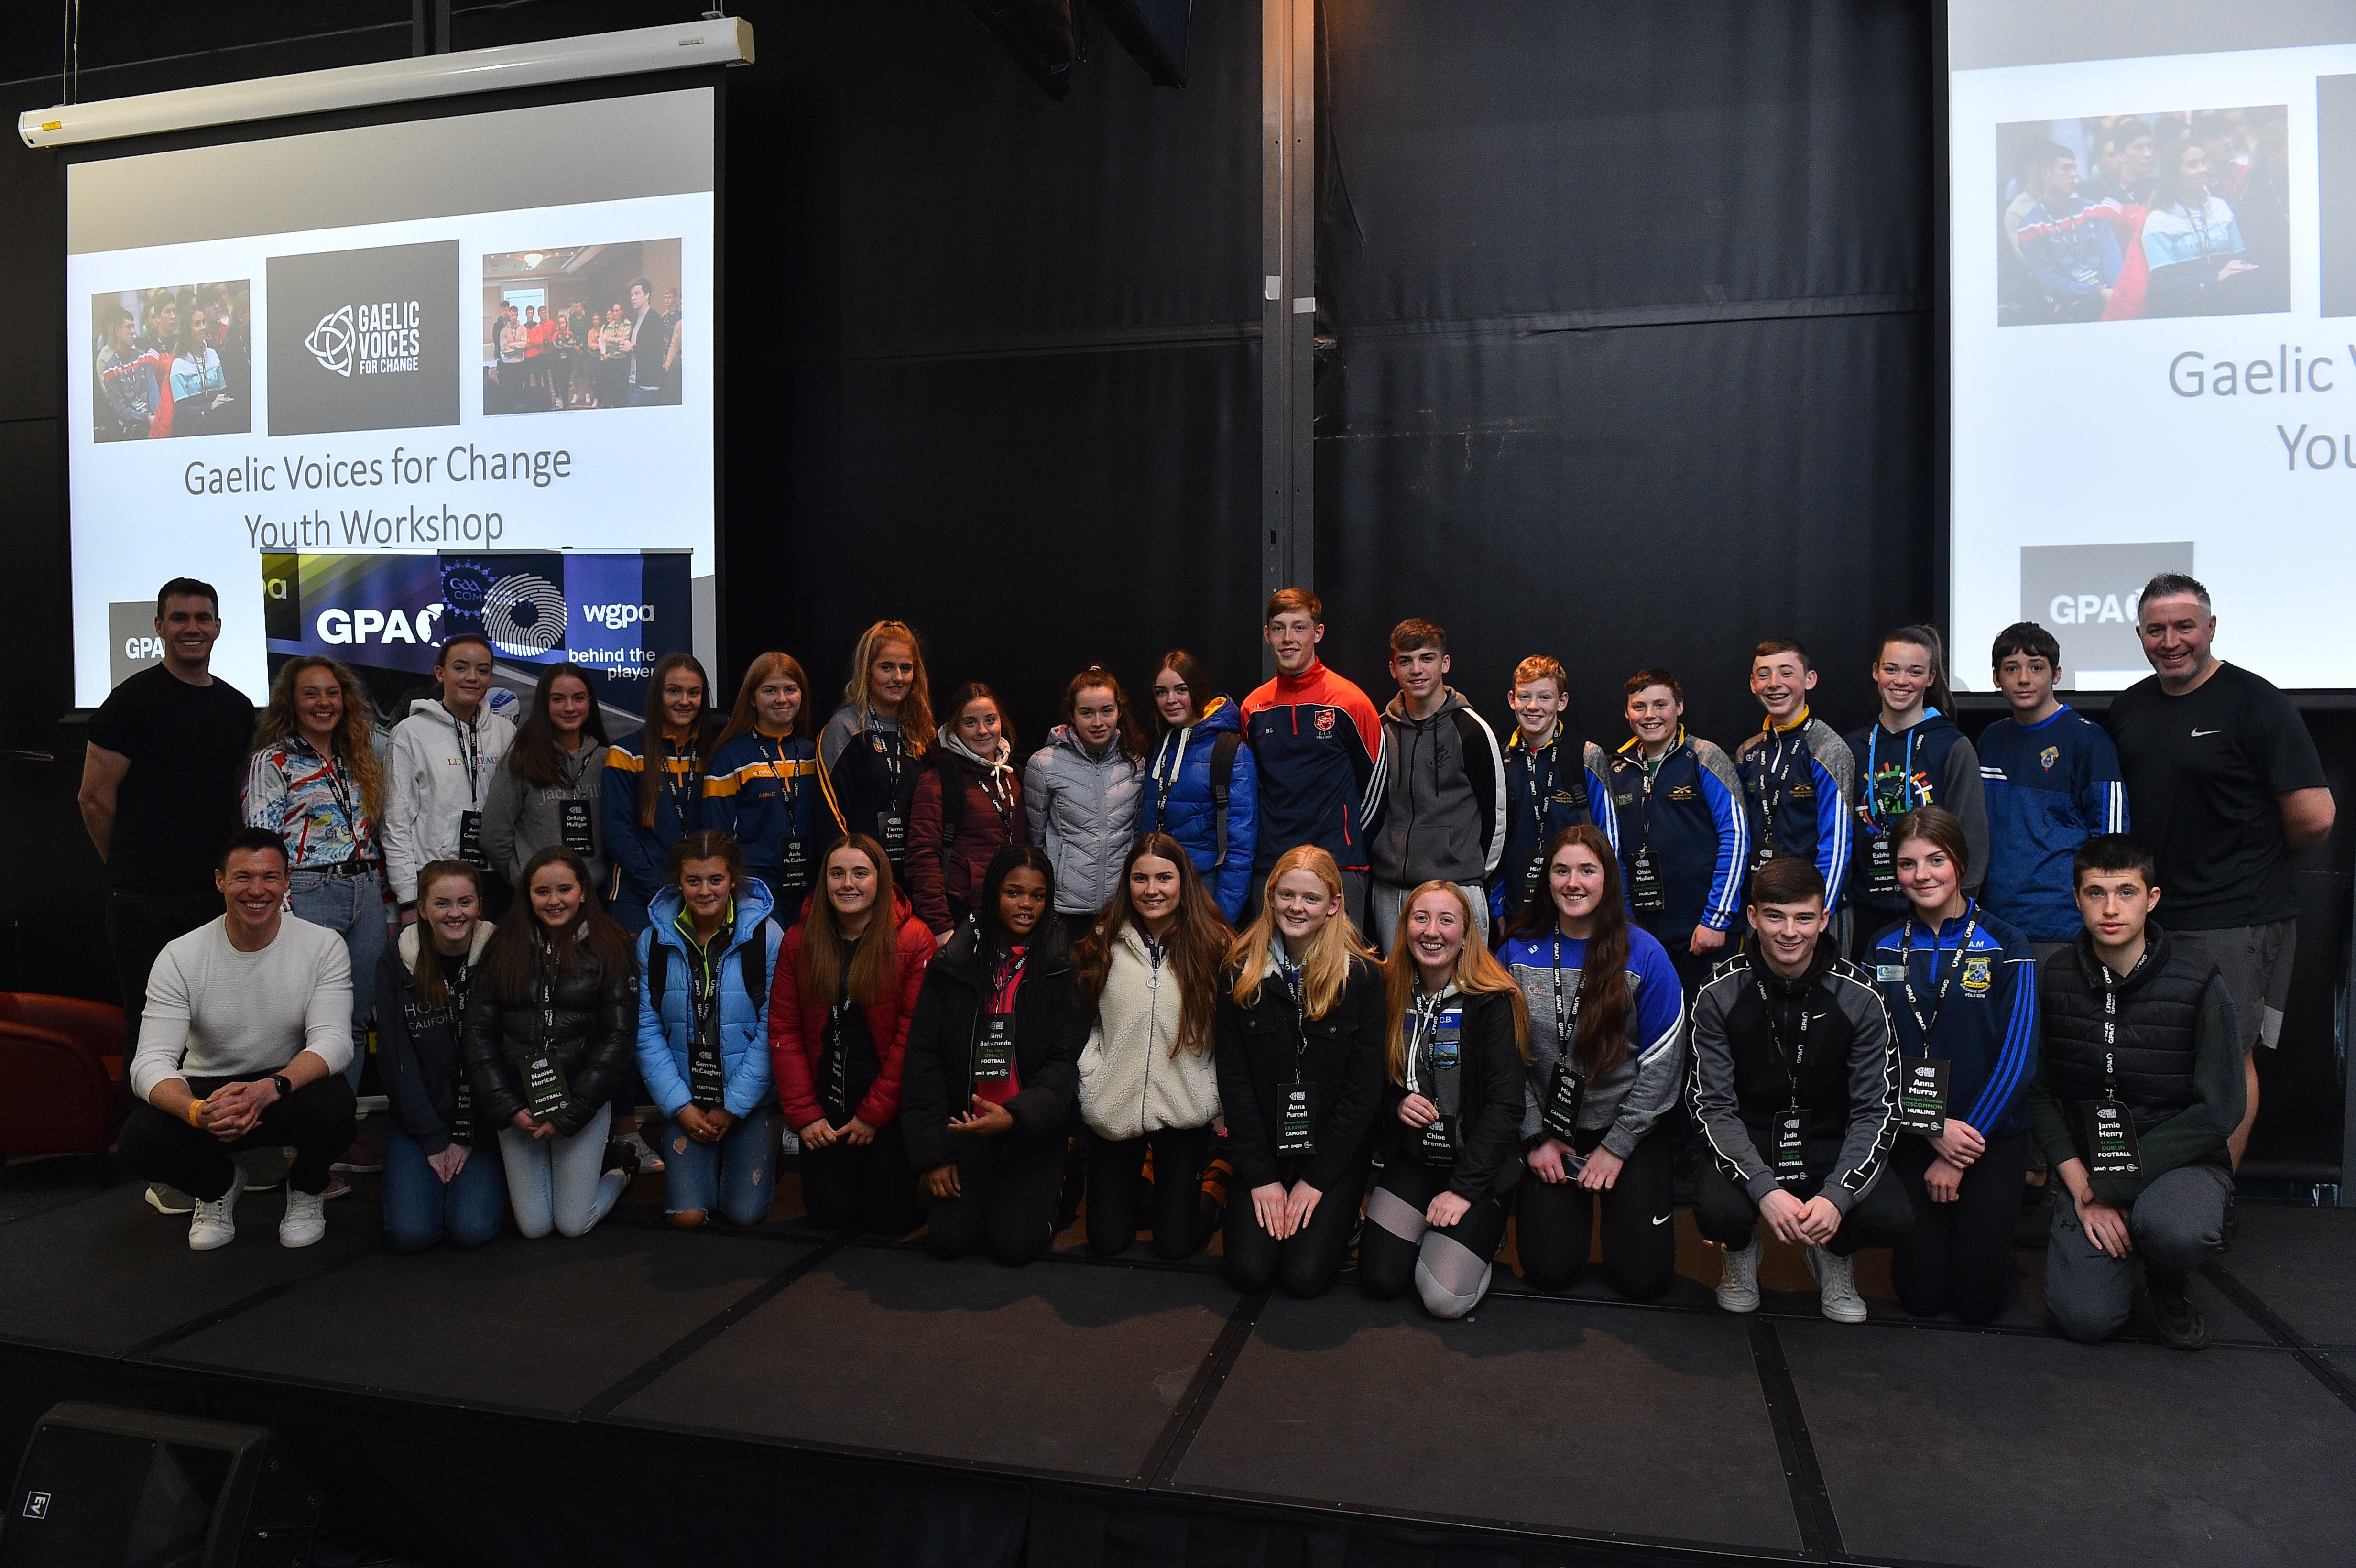 Tullamore among 9 clubs represented at Gaelic Voices for Change Youth Workshop